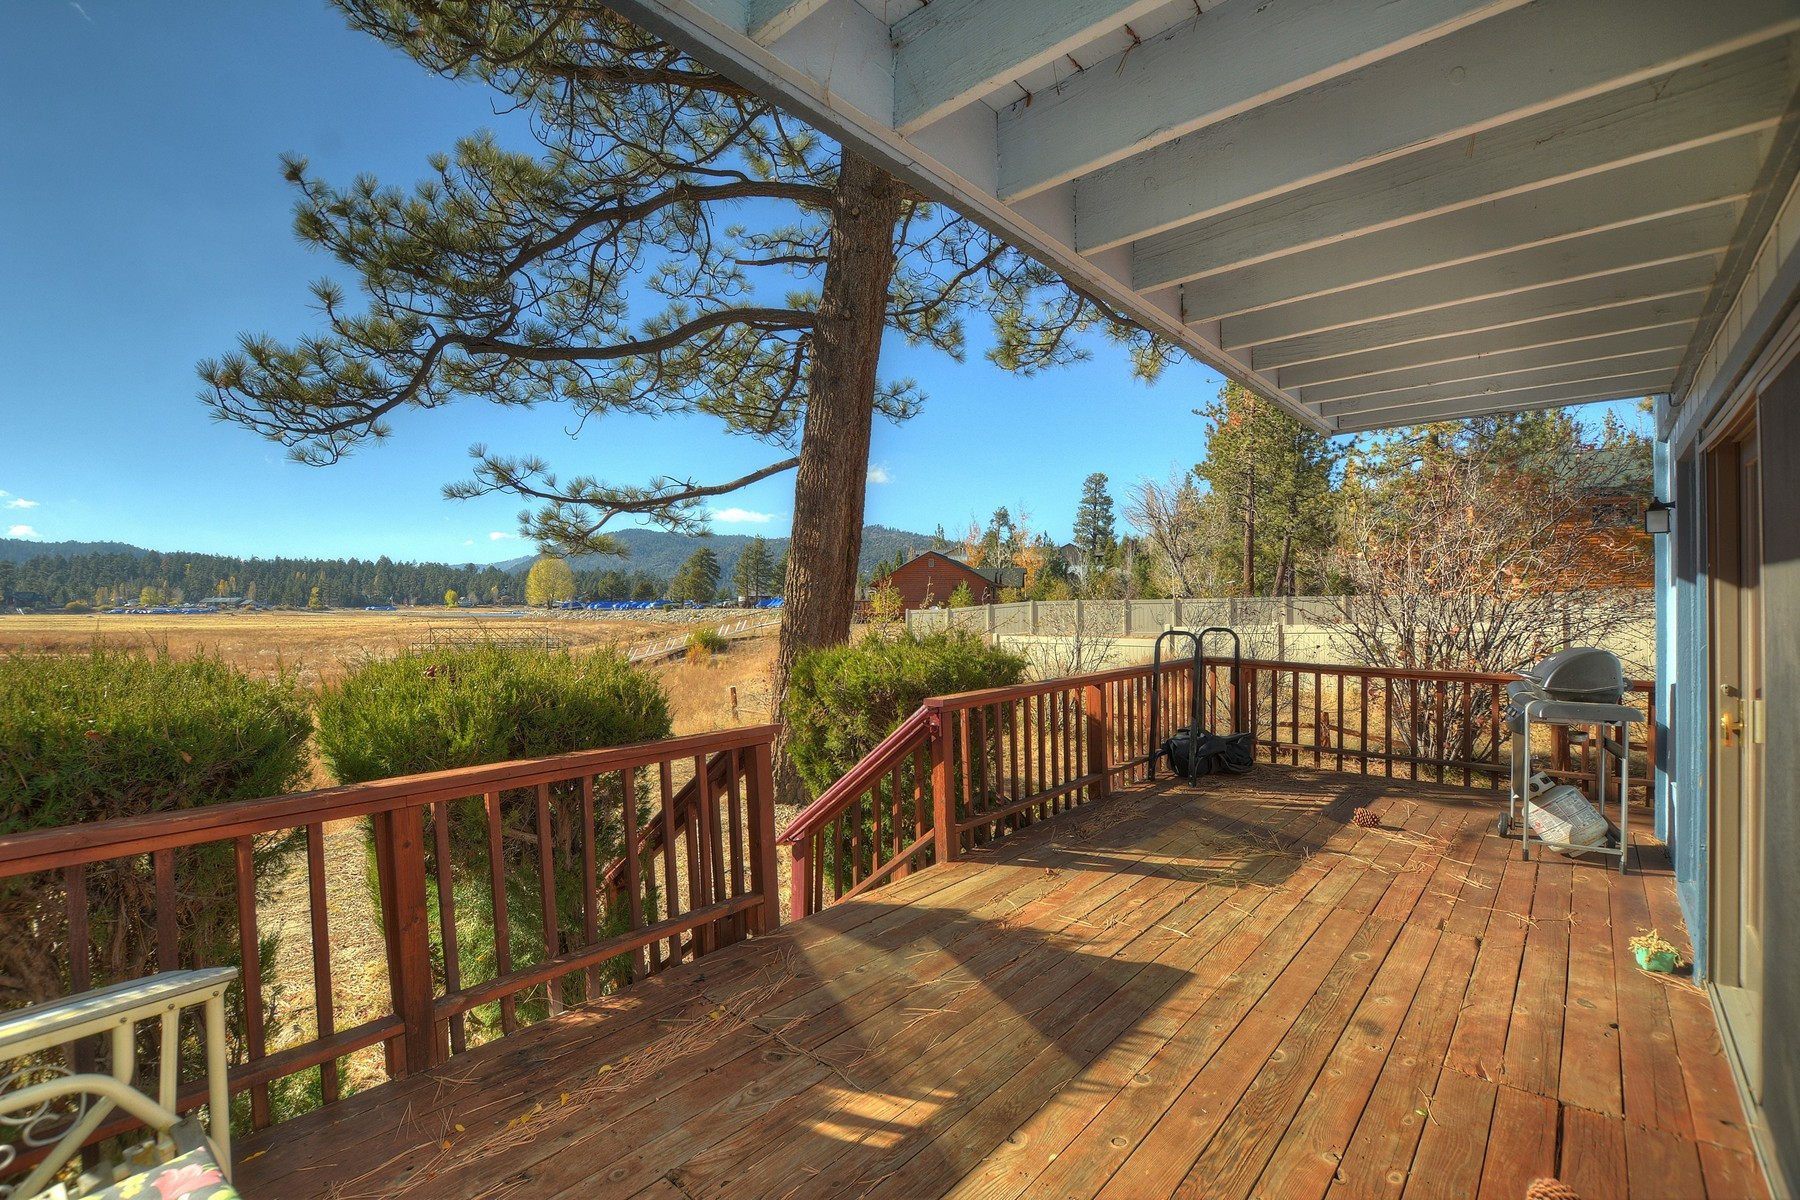 Single Family Home for Sale at 476 Tavern Big Bear Lake, California 92315 United States